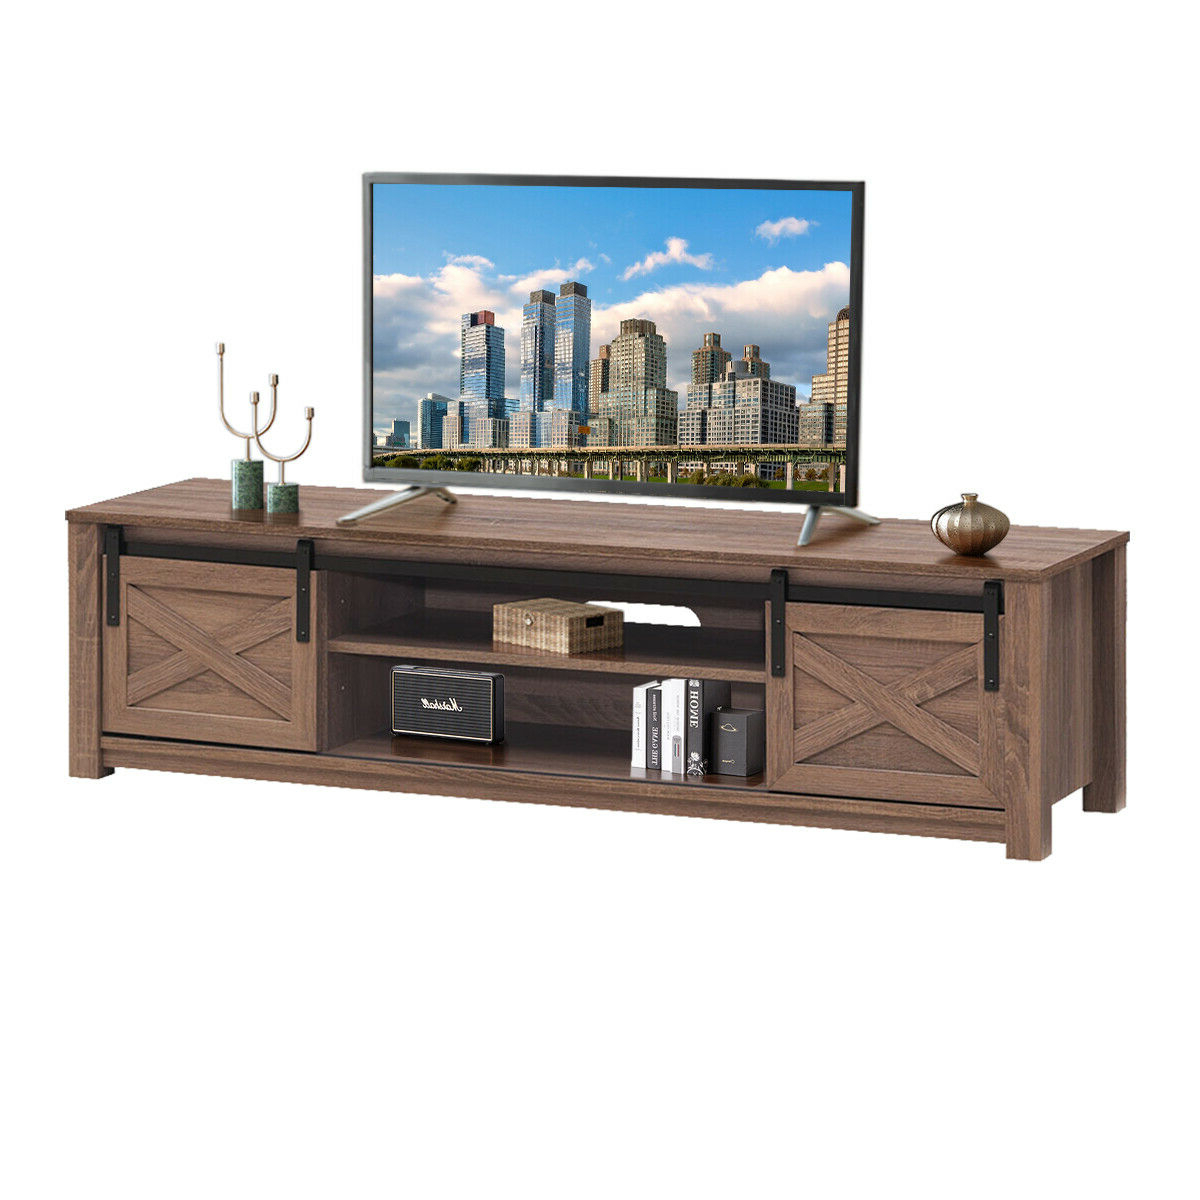 """Gymax Sliding Barn Door Tv Stand For Tv's Up To 65 Pertaining To Jowers Tv Stands For Tvs Up To 65"""" (View 9 of 20)"""